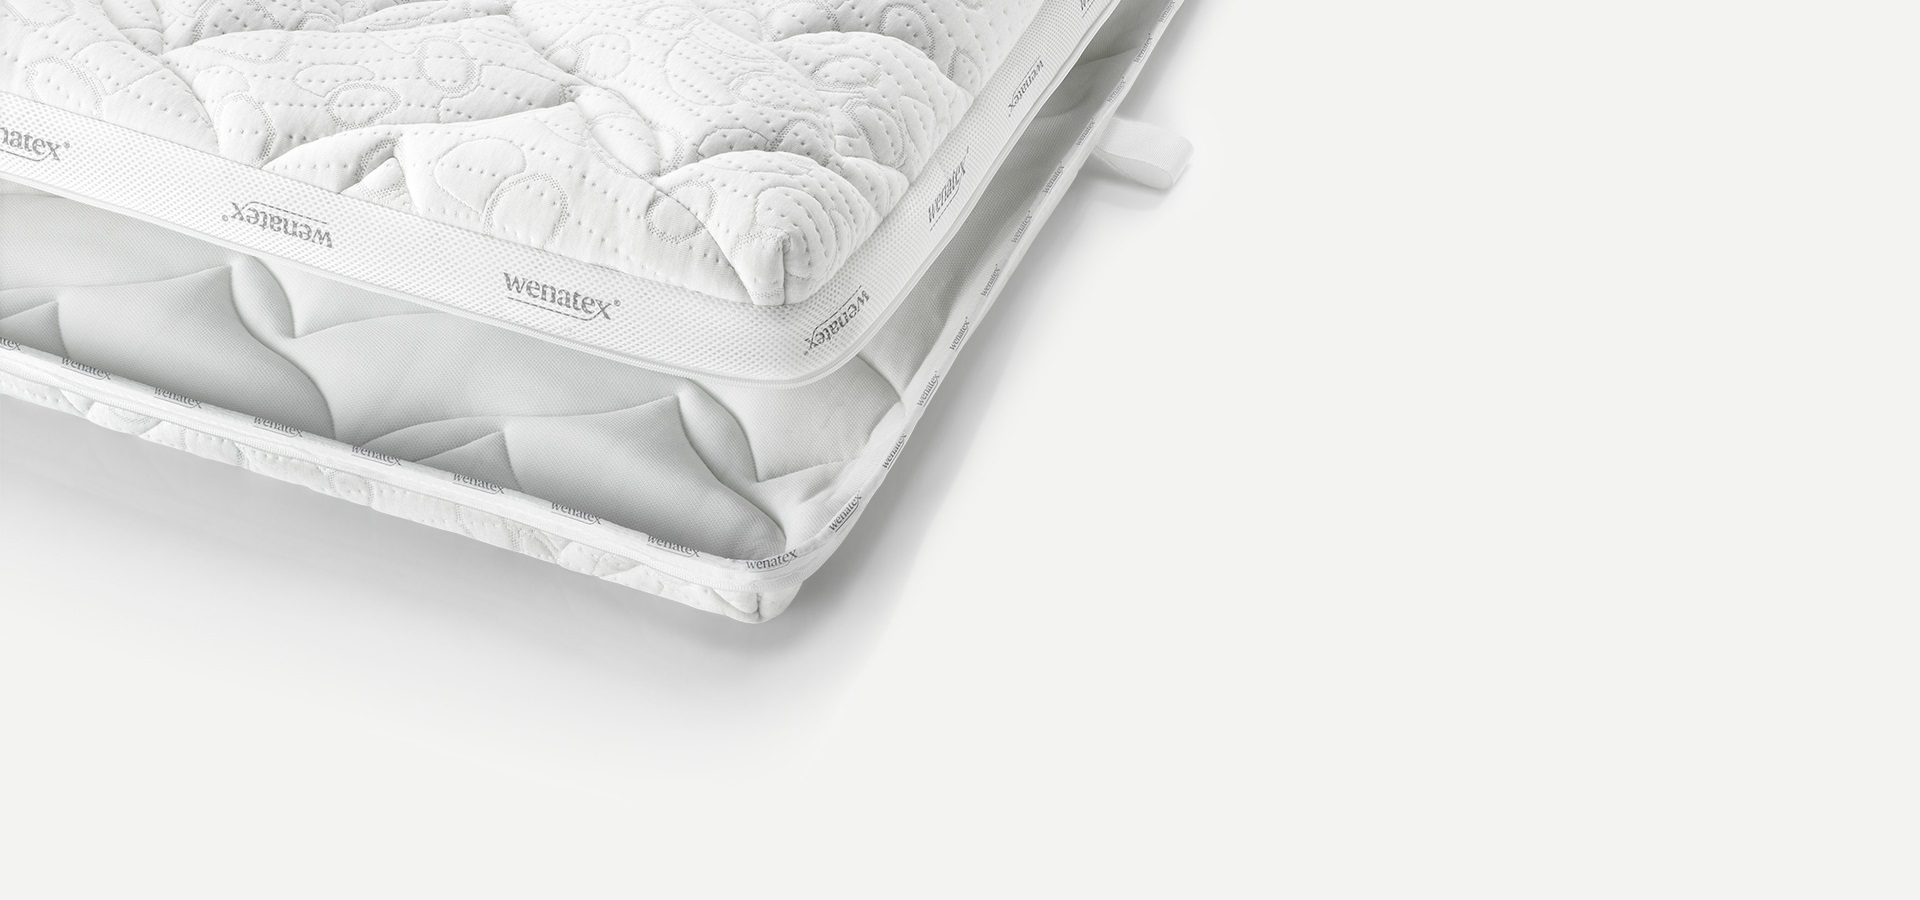 Materasso Top Air Silver.The Wenacel Sensitive Mattress Cover Offers An Unbeatable Quality